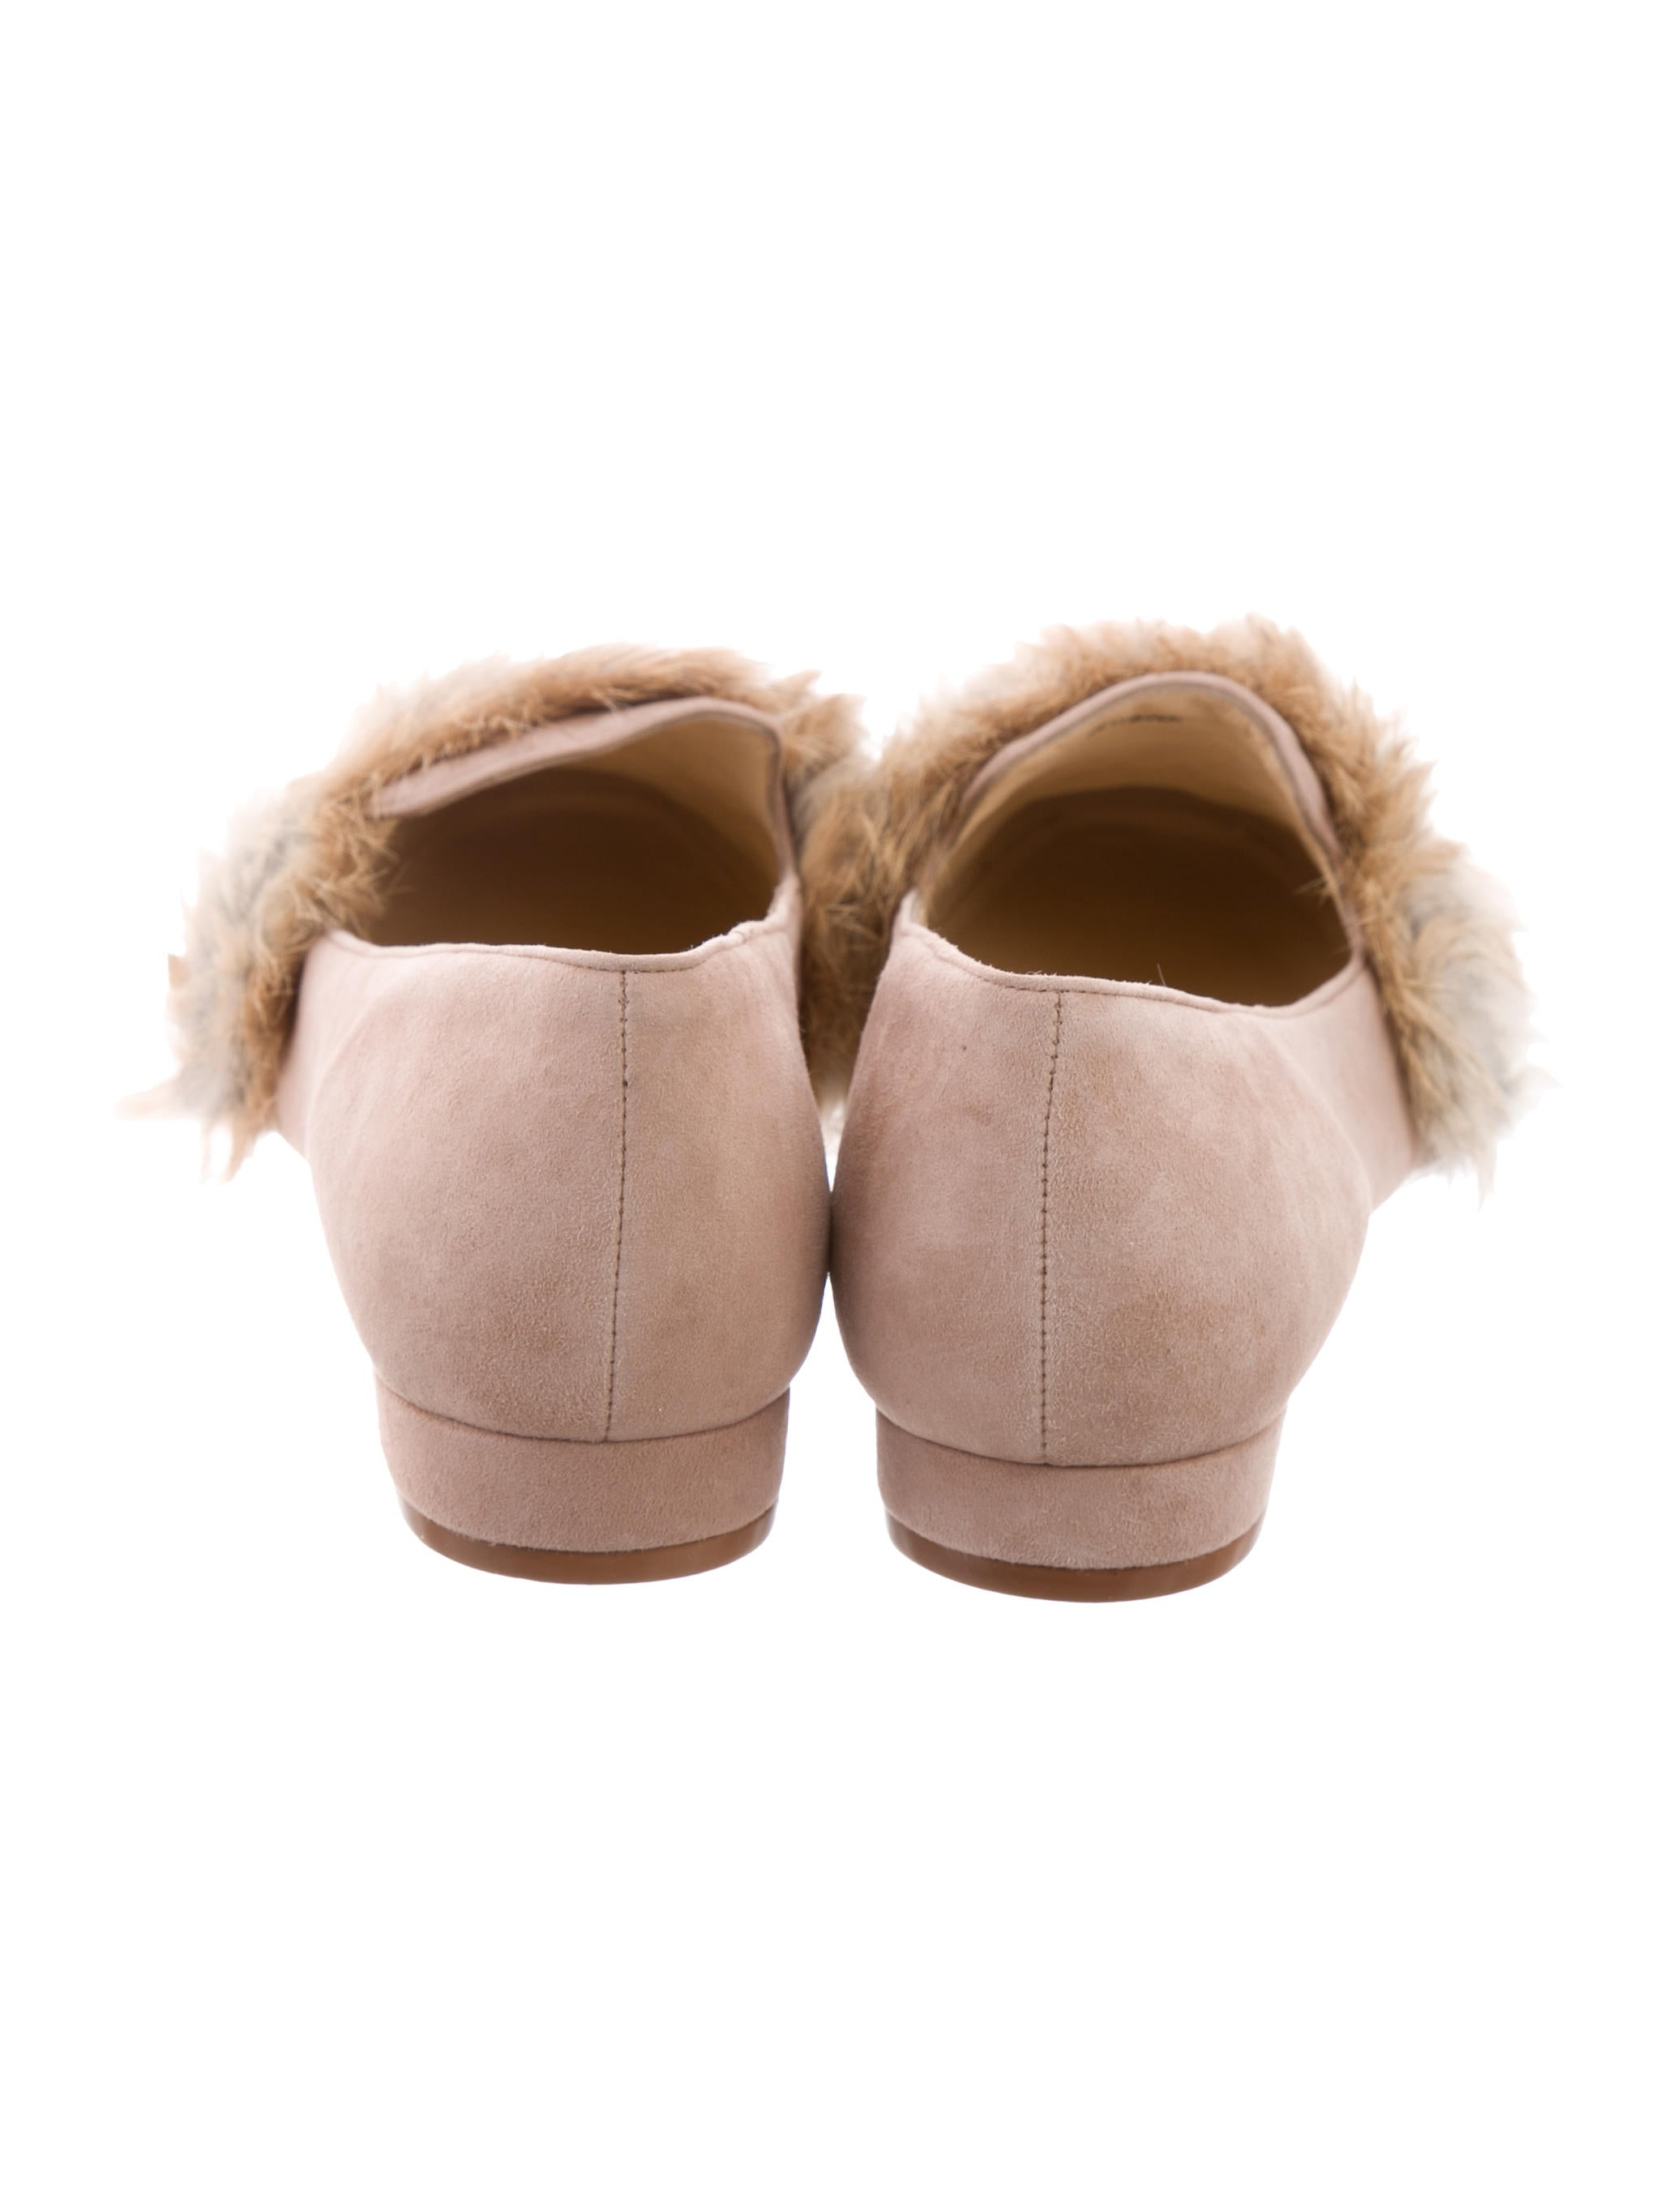 free shipping sast Alexandre Birman Fany Fur-Accented Flats w/ Tags free shipping new buy cheap pay with visa clearance under $60 under 50 dollars a5lfA5obJ